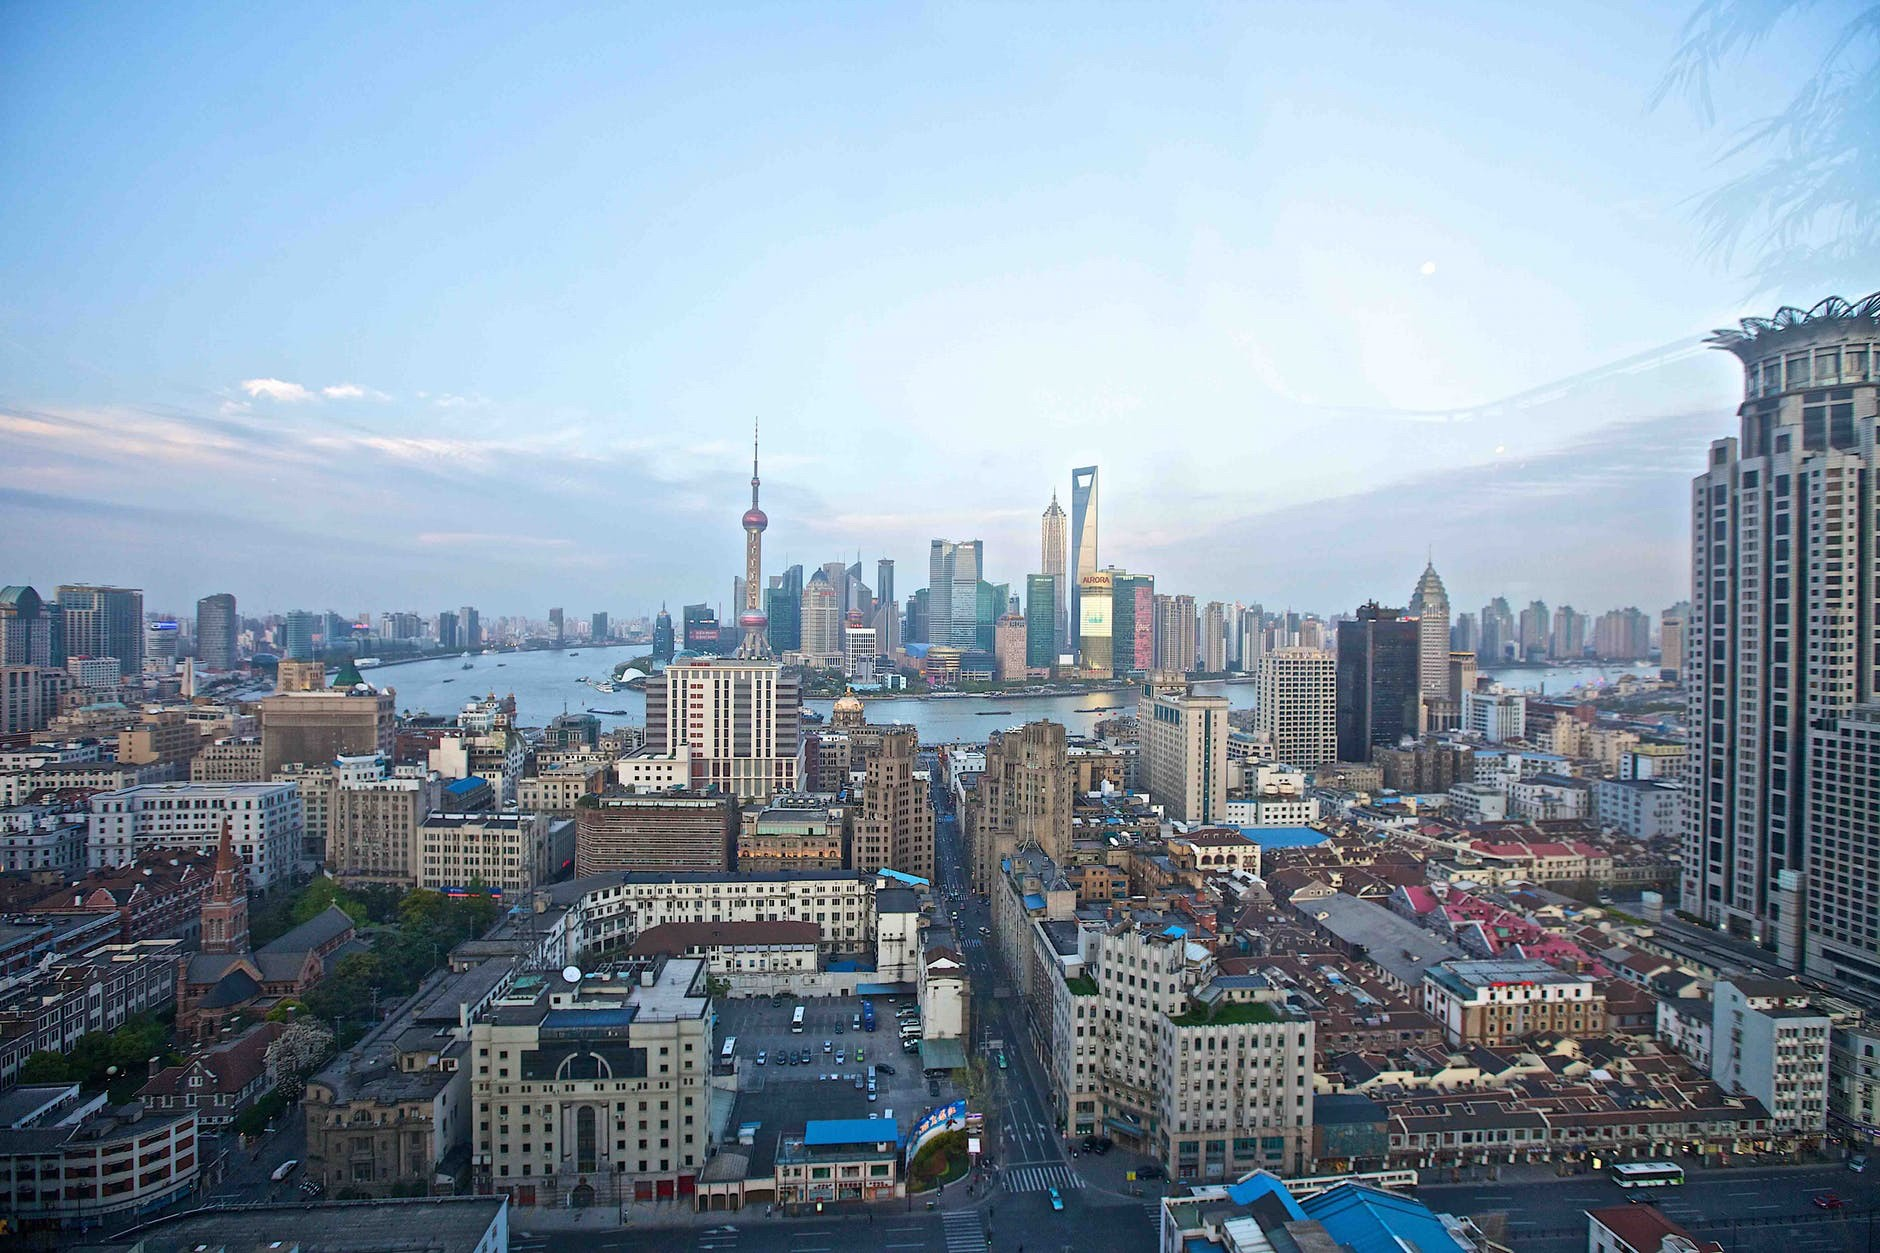 Flight Deal Round Trip From Los Angeles Area to Shanghai #losangeles #shanghai